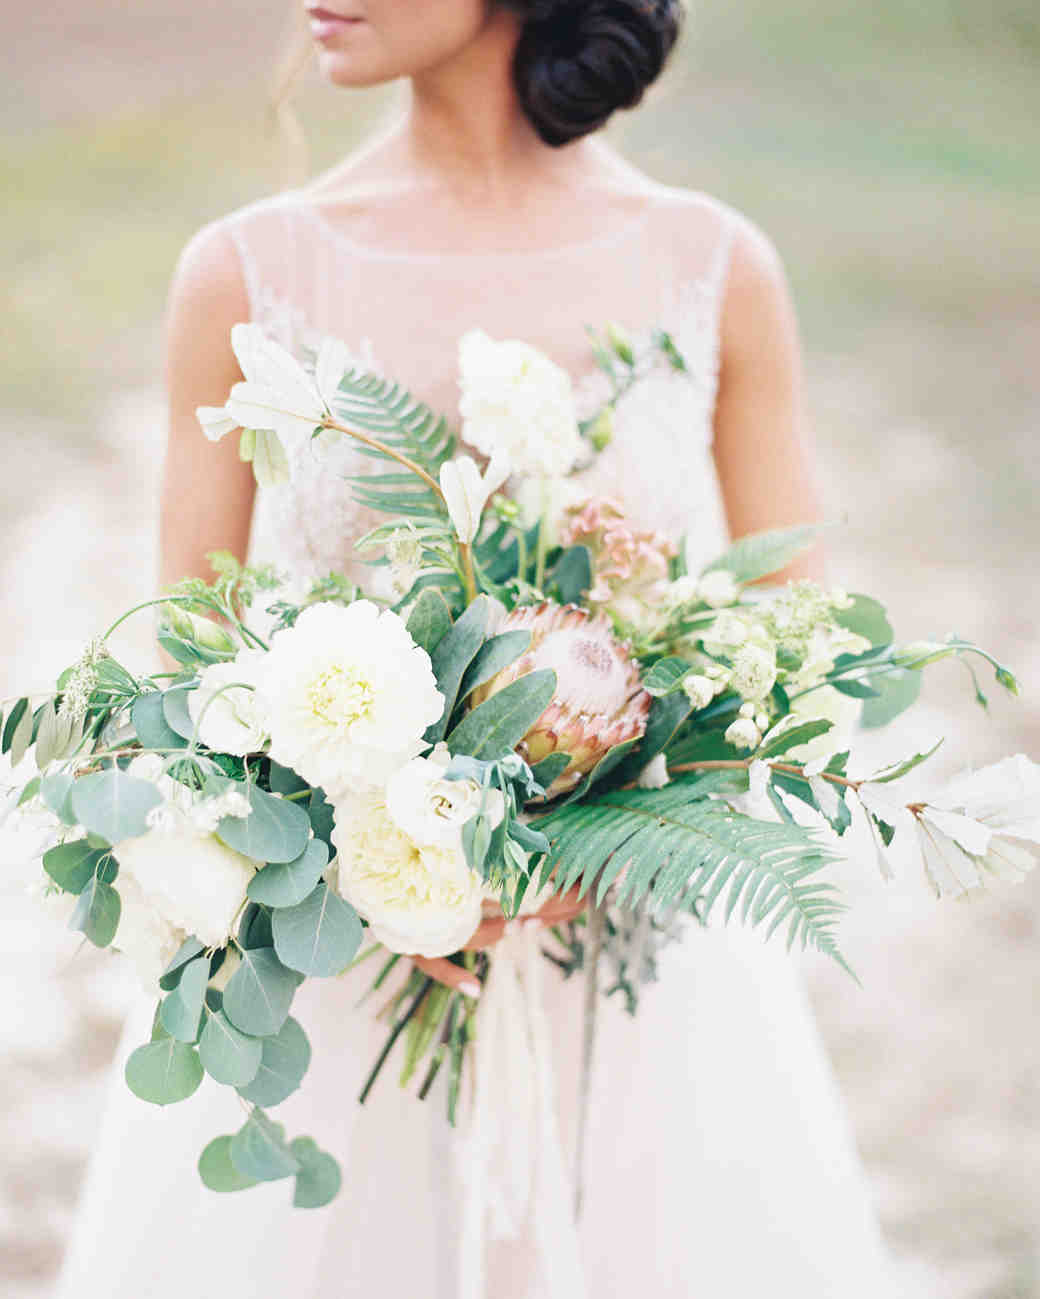 Spring Wedding Flowers Pictures: 52 Ideas For Your Spring Wedding Bouquet